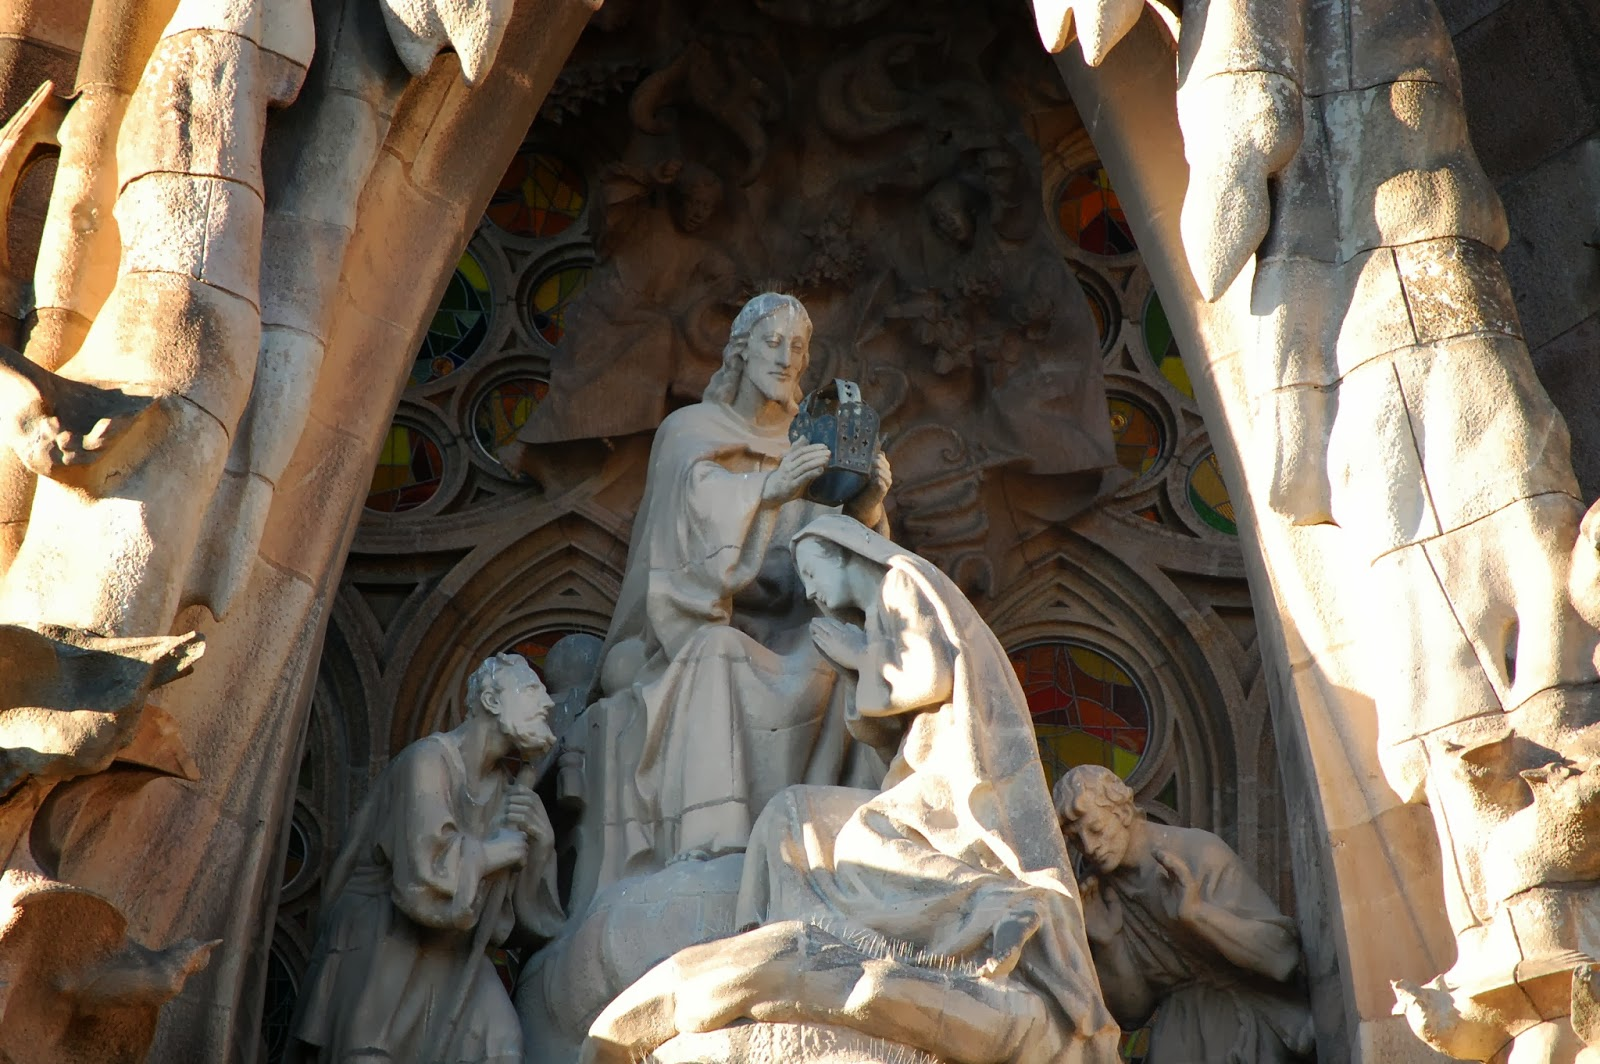 Coronation of Mary, carvings on Nativity Facade